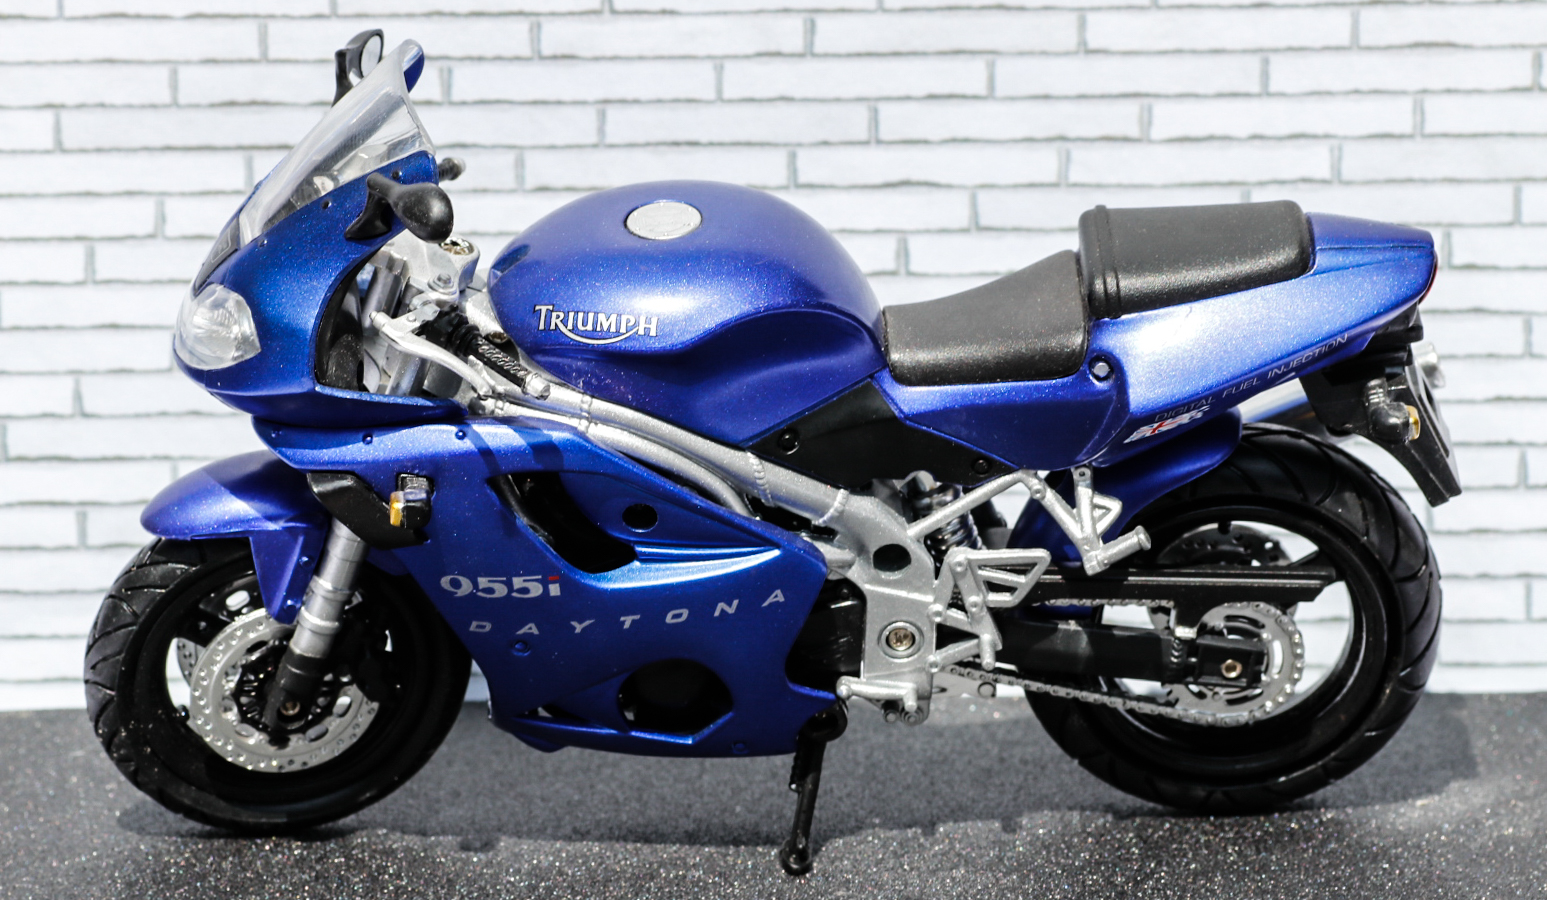 New Ray 1-12 Triumph Daytona 955i